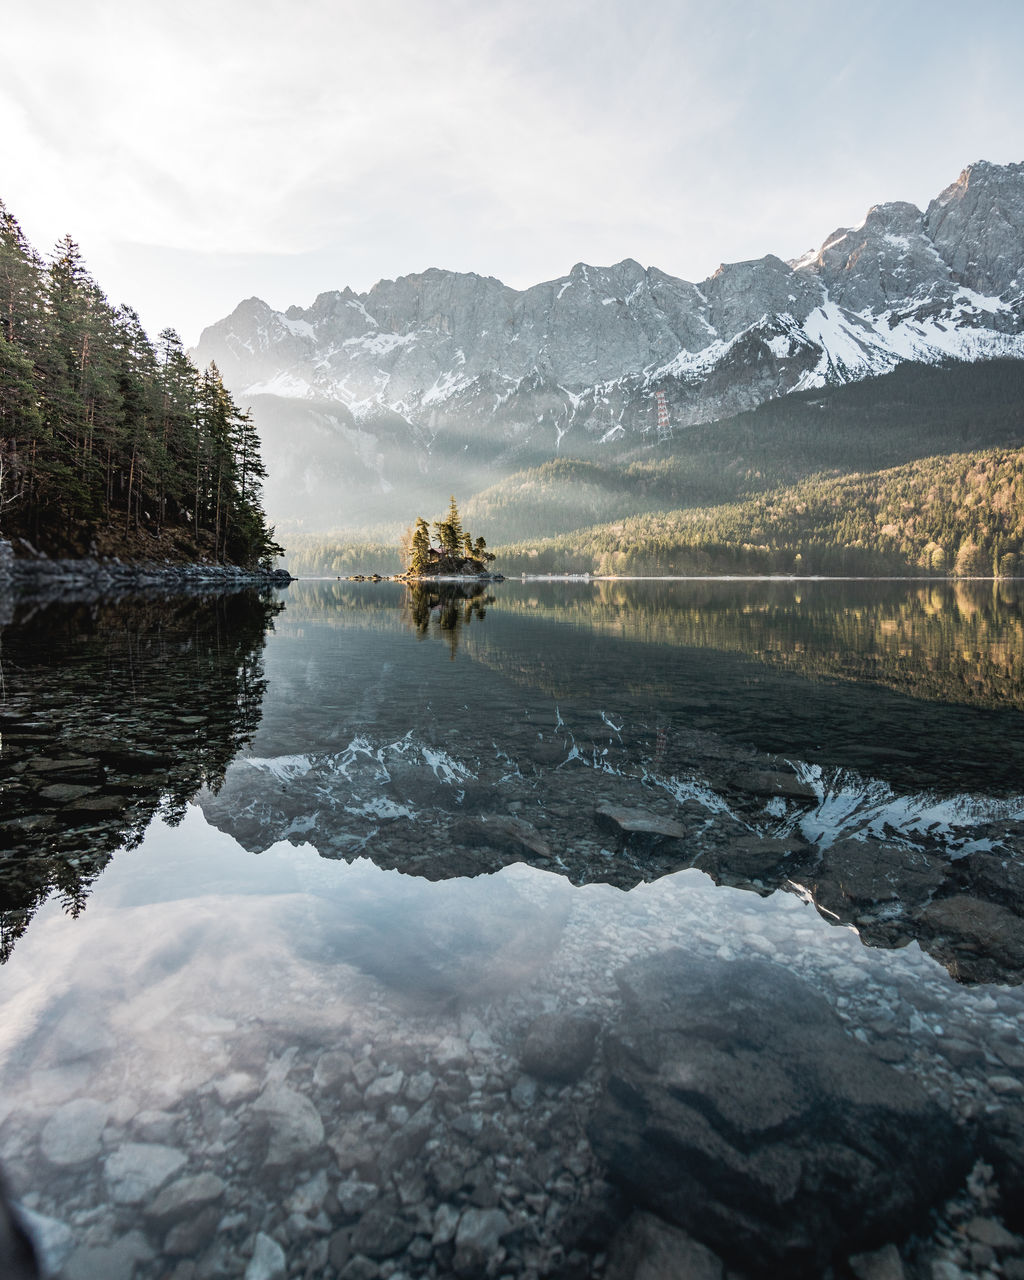 Reflection Of Mountains On Calm Lake